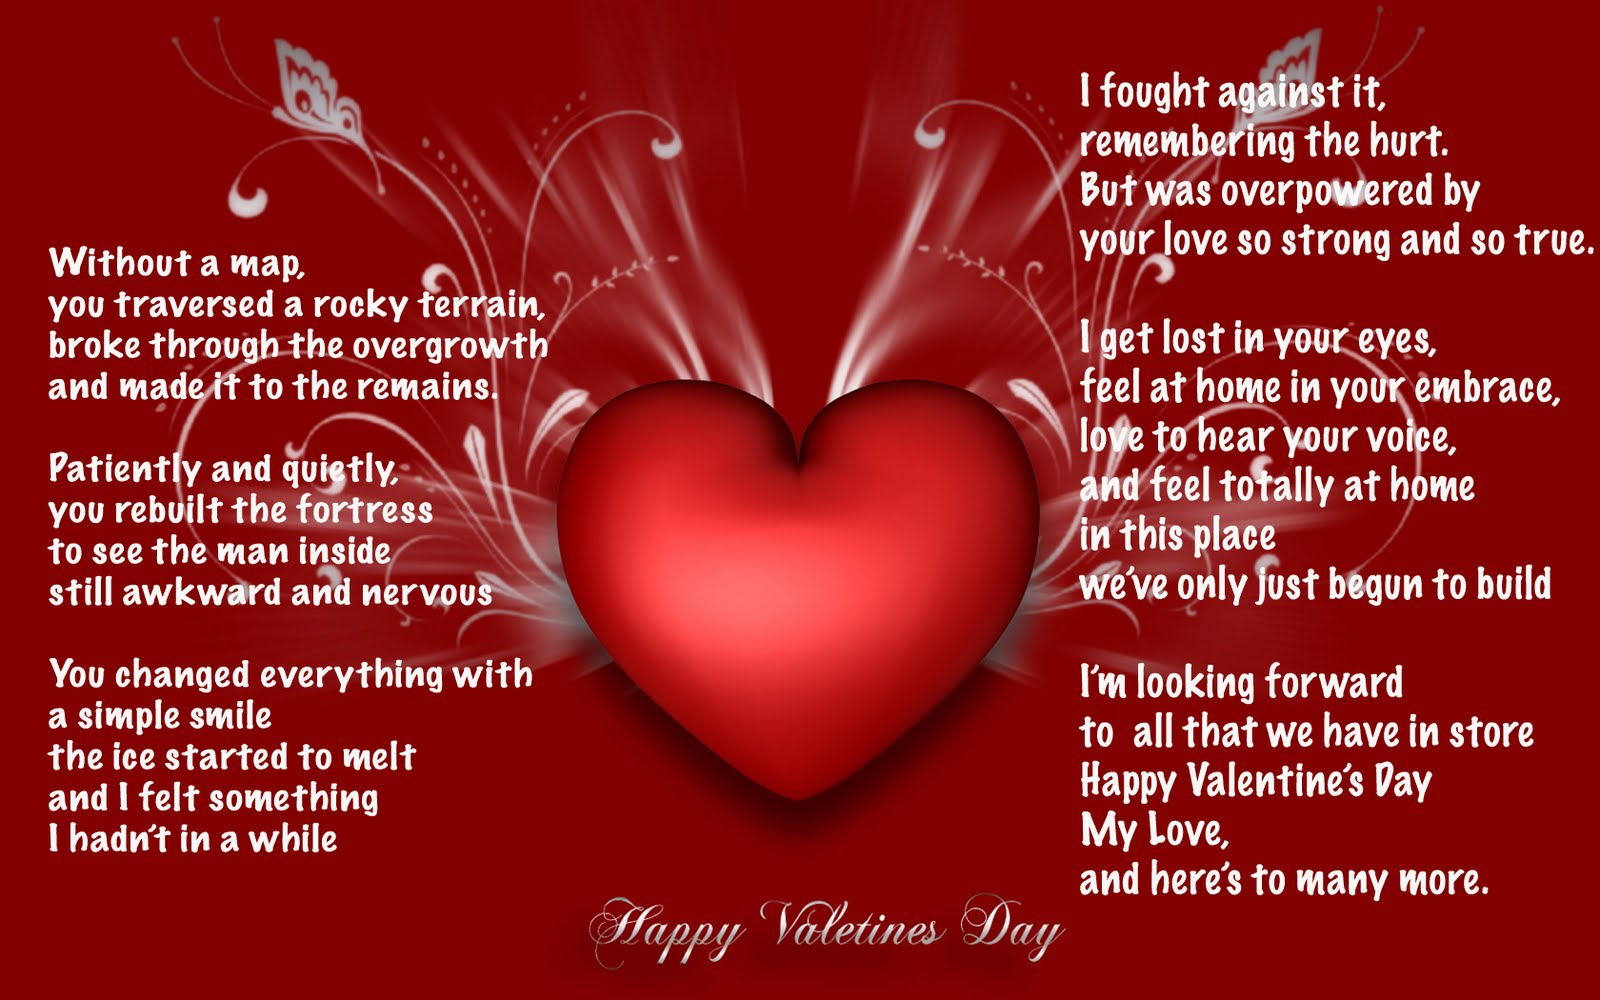 valentines day quotes 2013 new latest pictures ForQuotes On Valentine Day